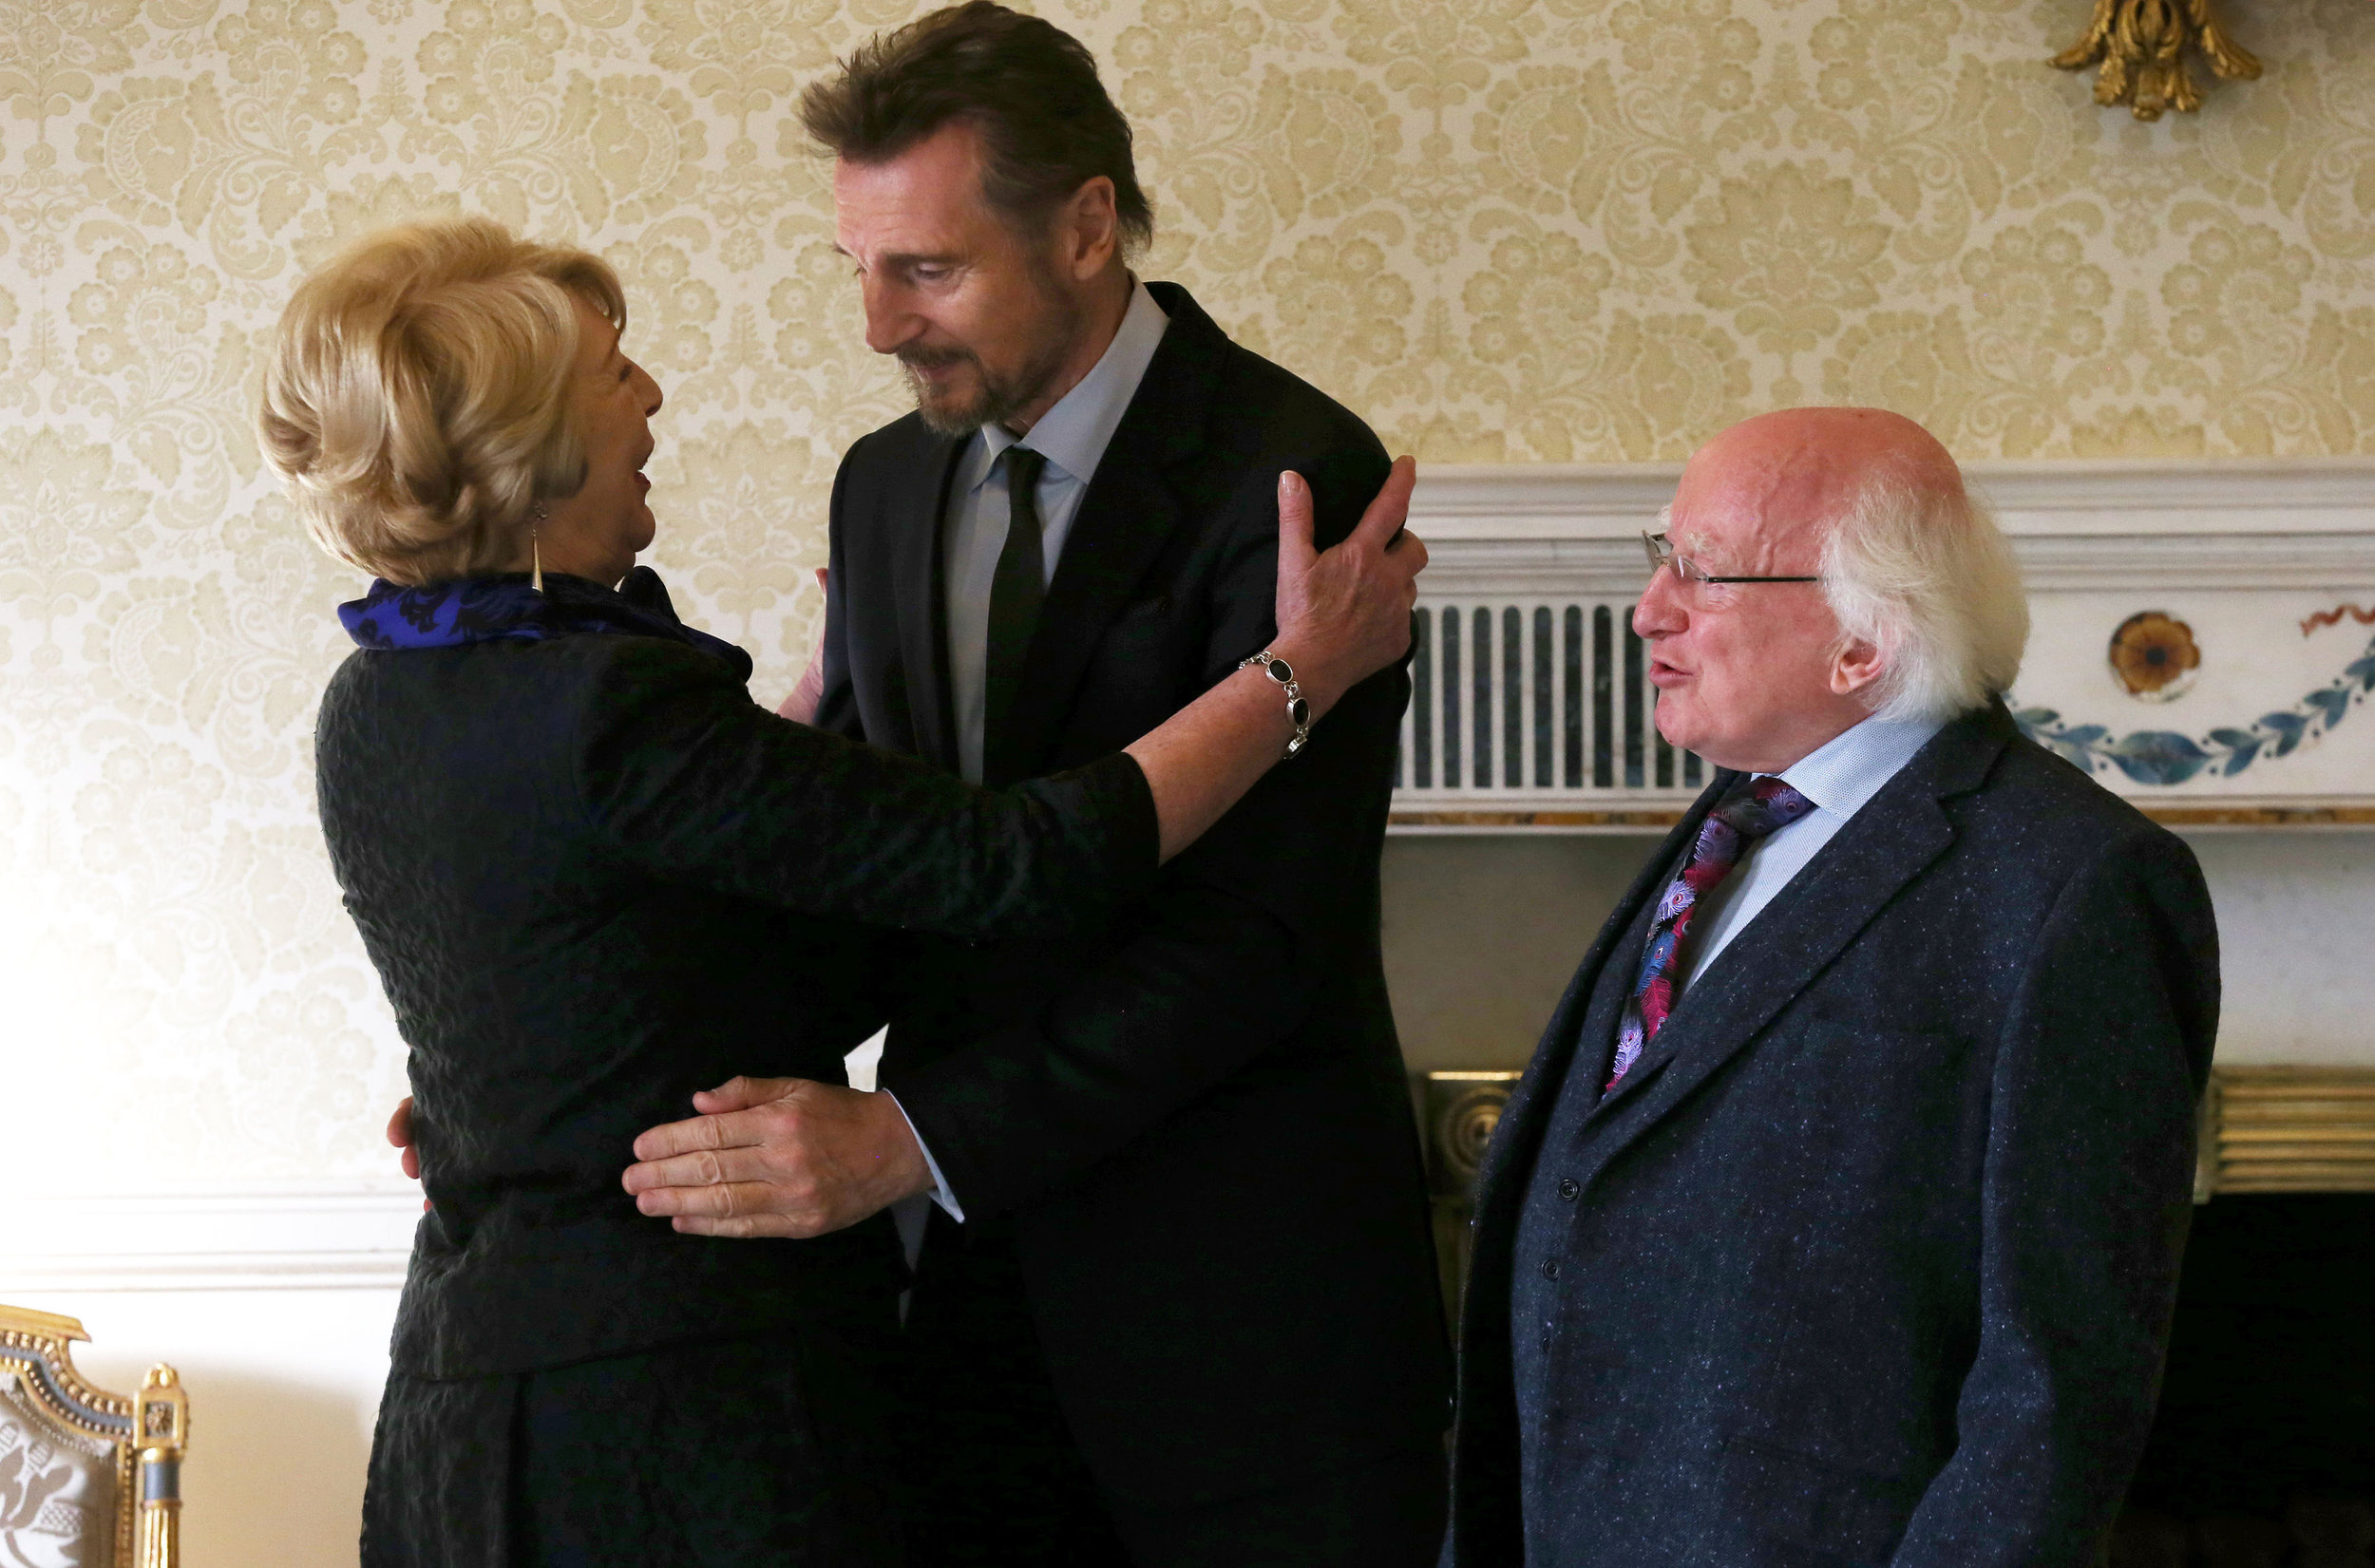 Liam Neeson at Aras an Uachtarain with President Michael D Higgins and wife Sabina. Picture: Laura Hutton